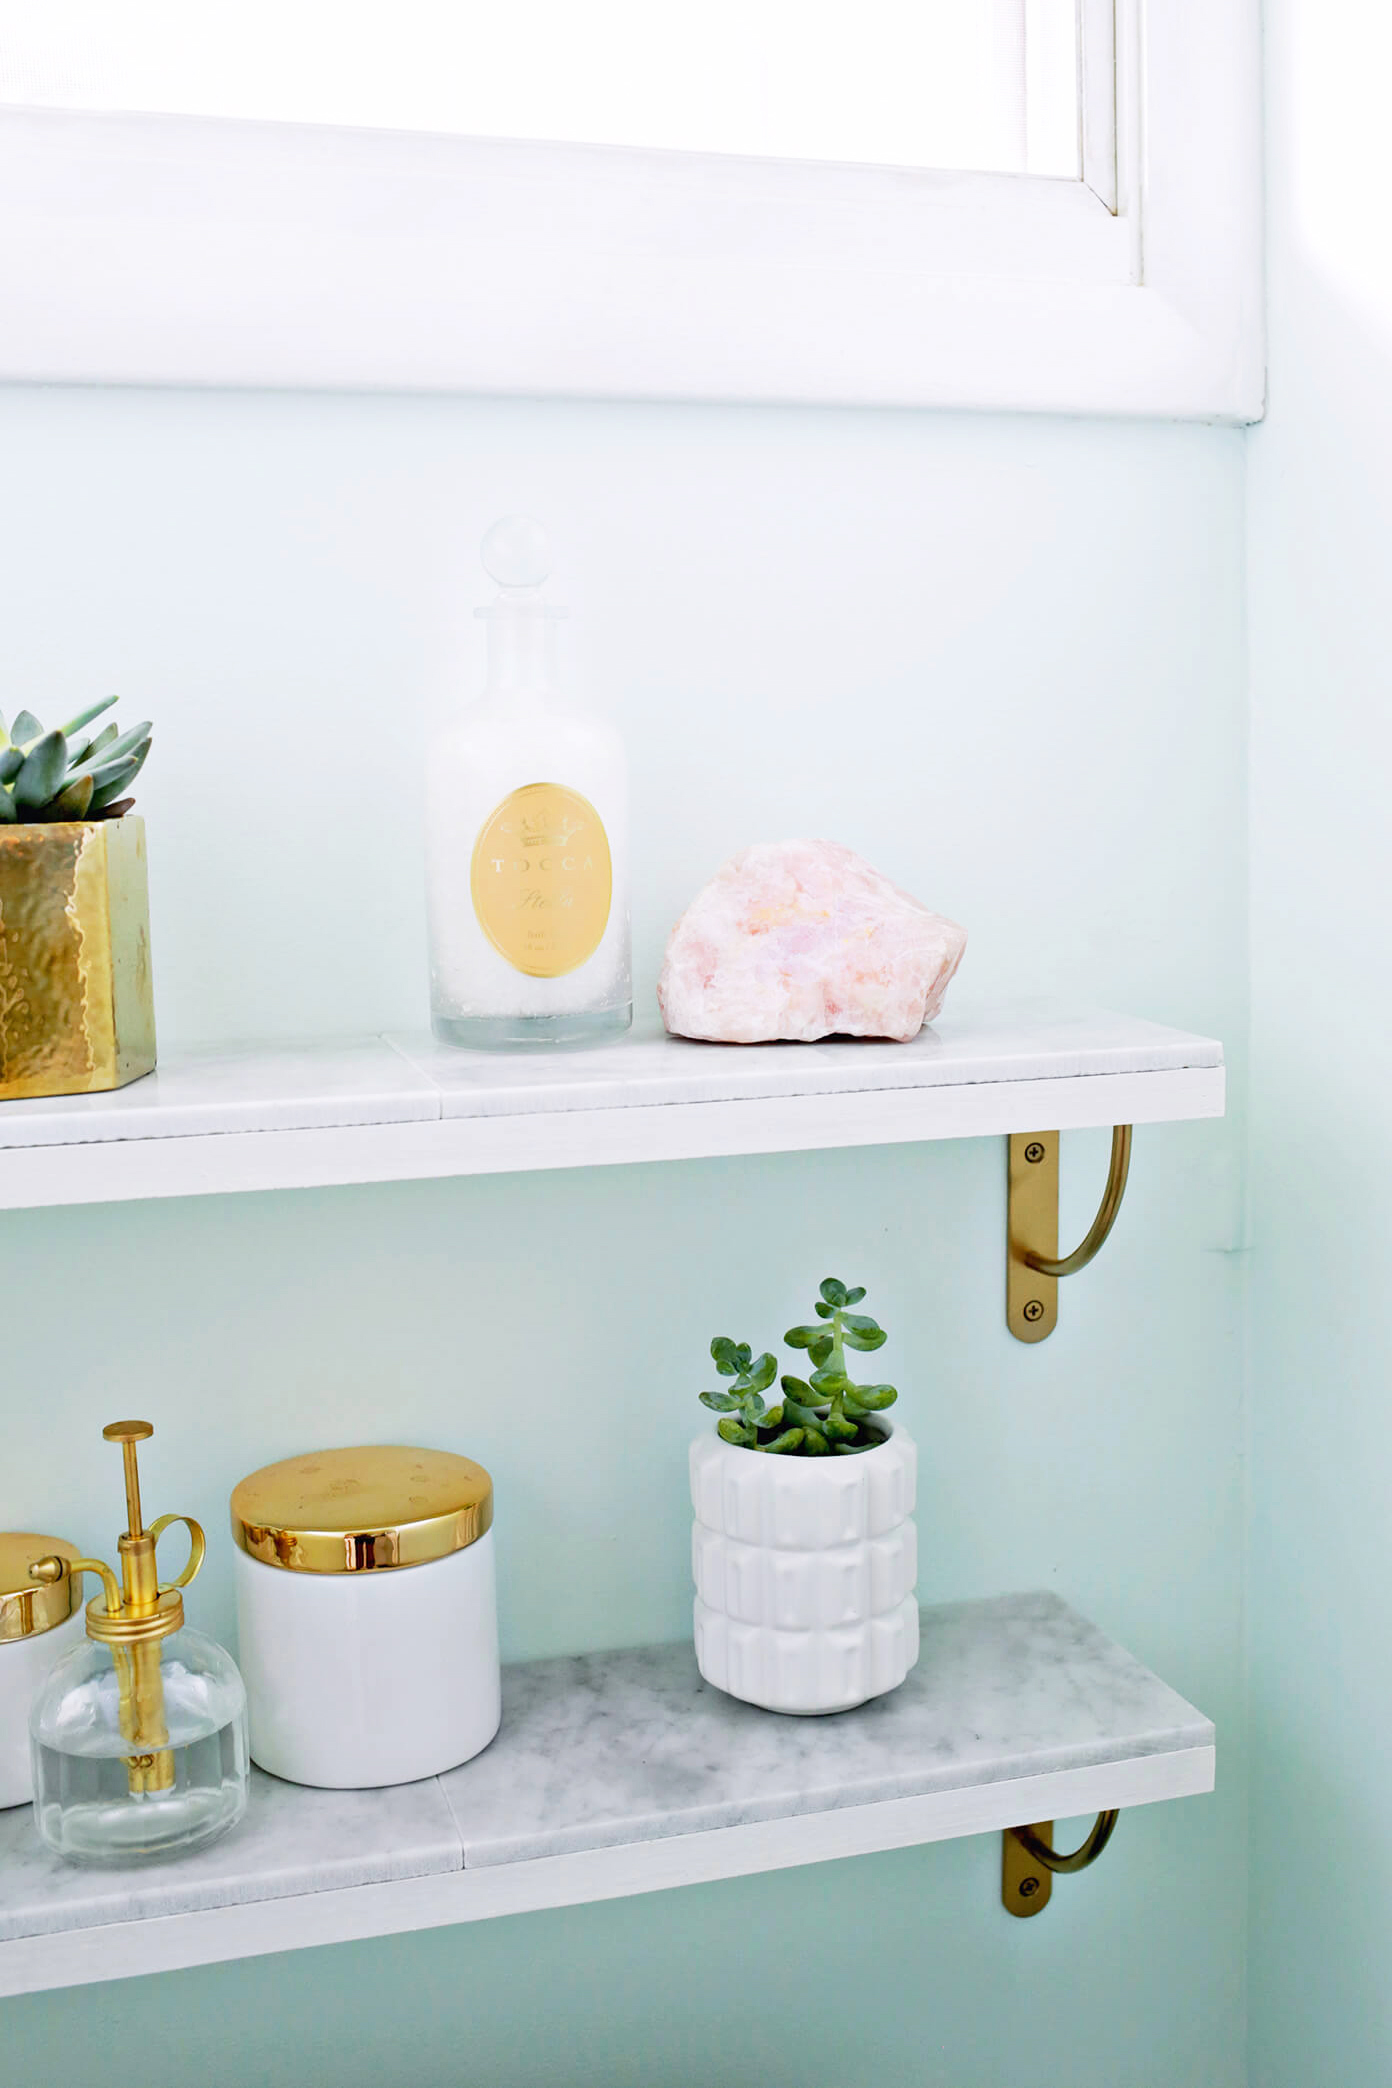 Diy Shelves From Basic Materials That Look Expensive Apartment Therapy